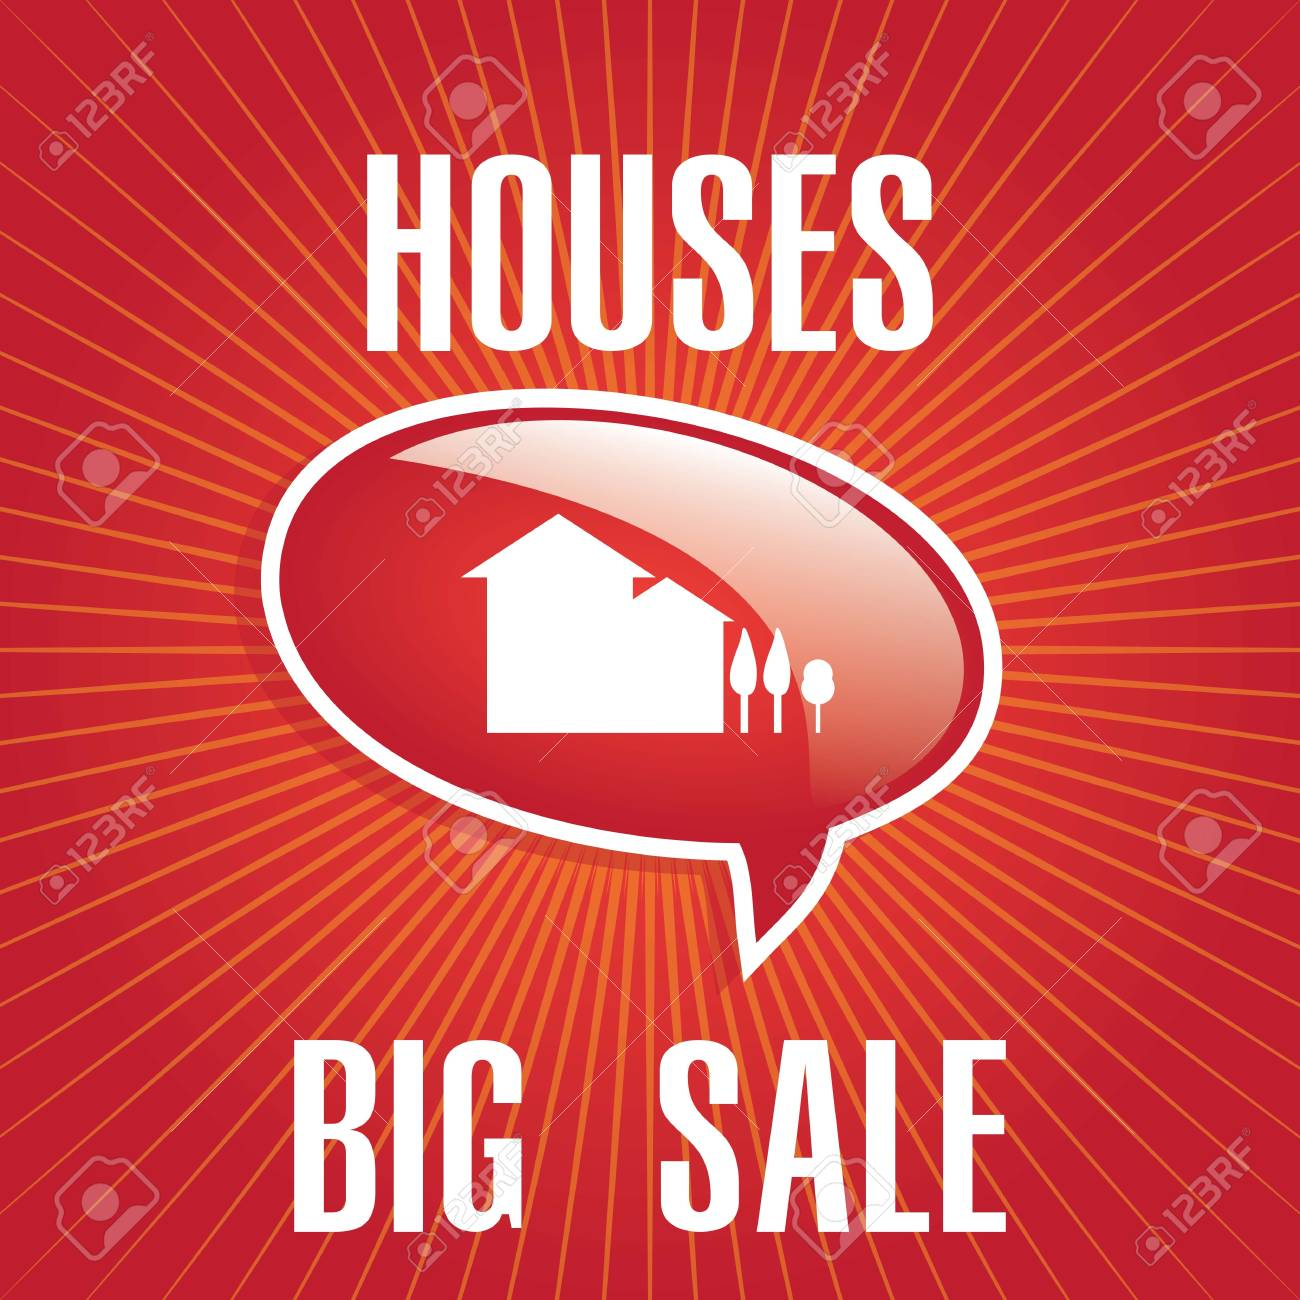 big sale houses announcement over red background. vector Stock Vector - 17623103